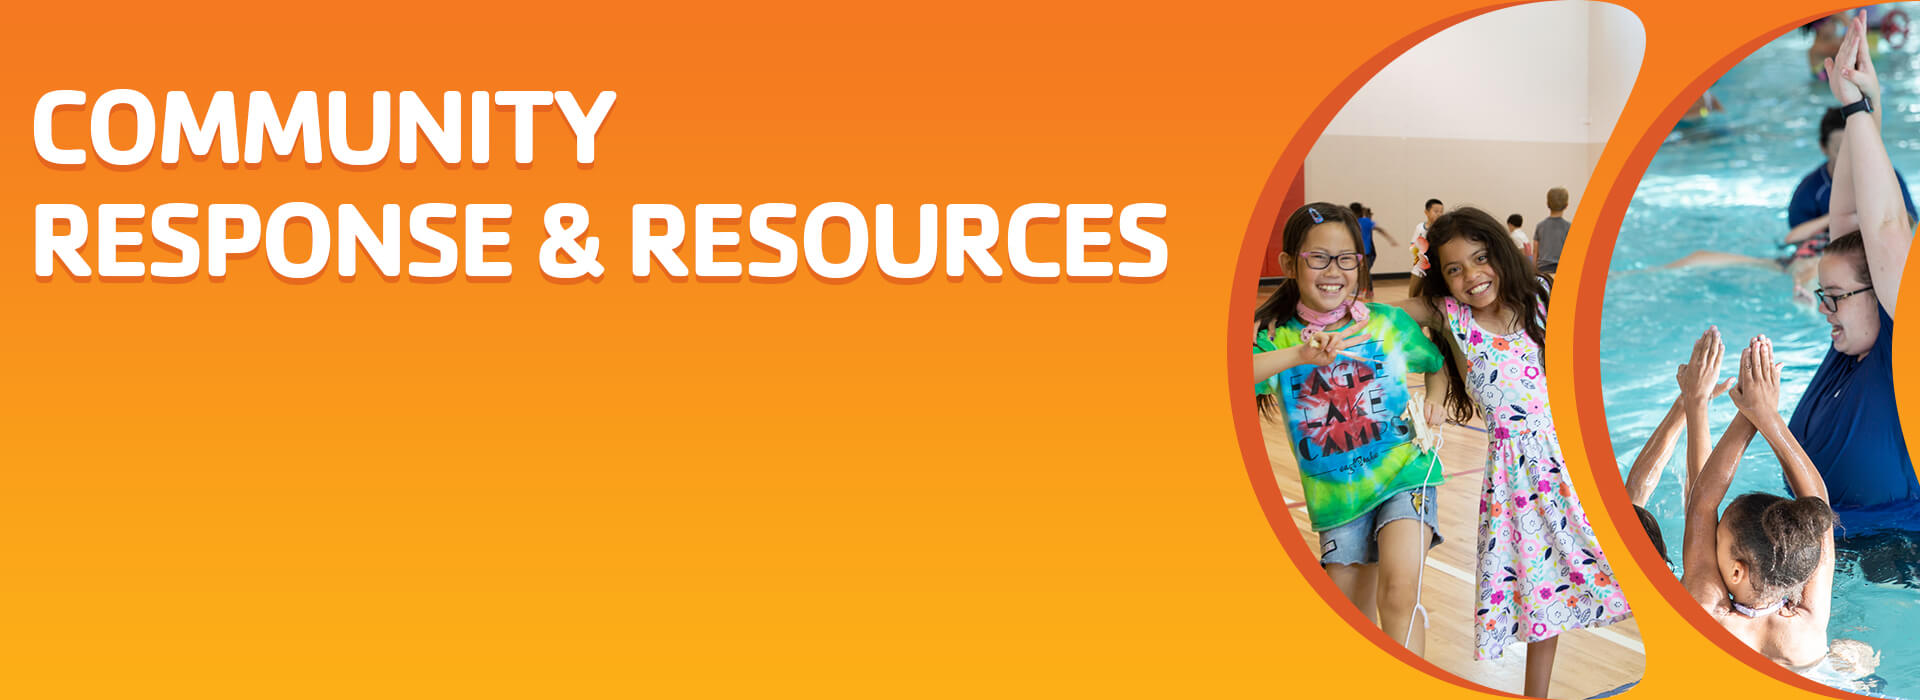 CommunityResponse&Resources_1920x700